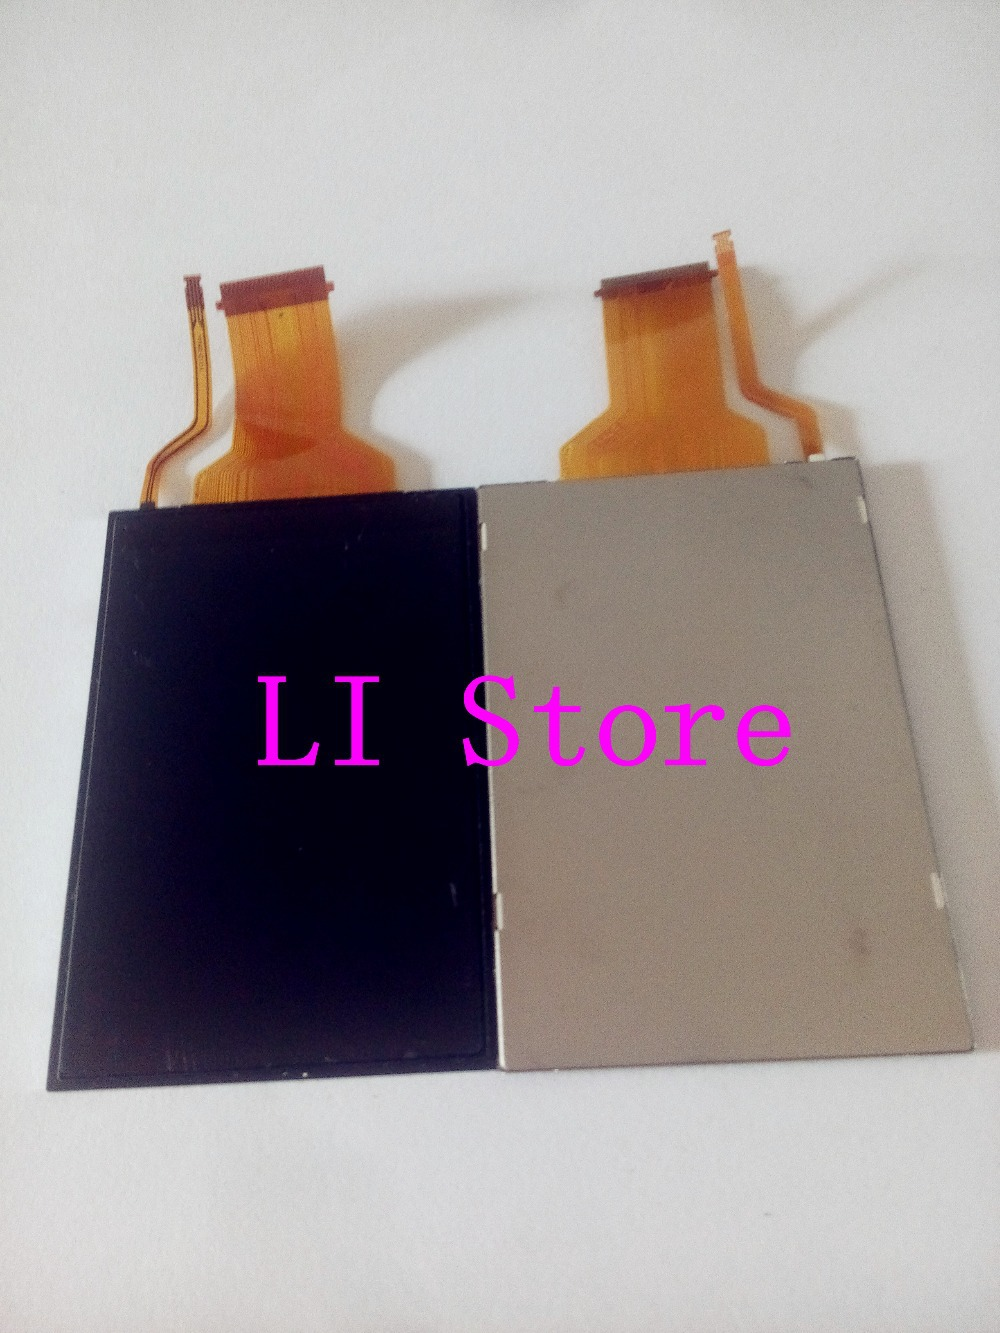 NEW LCD Display Screen For Nikon 1 J1 Digital Camera Repair Part With Backlight And Glass